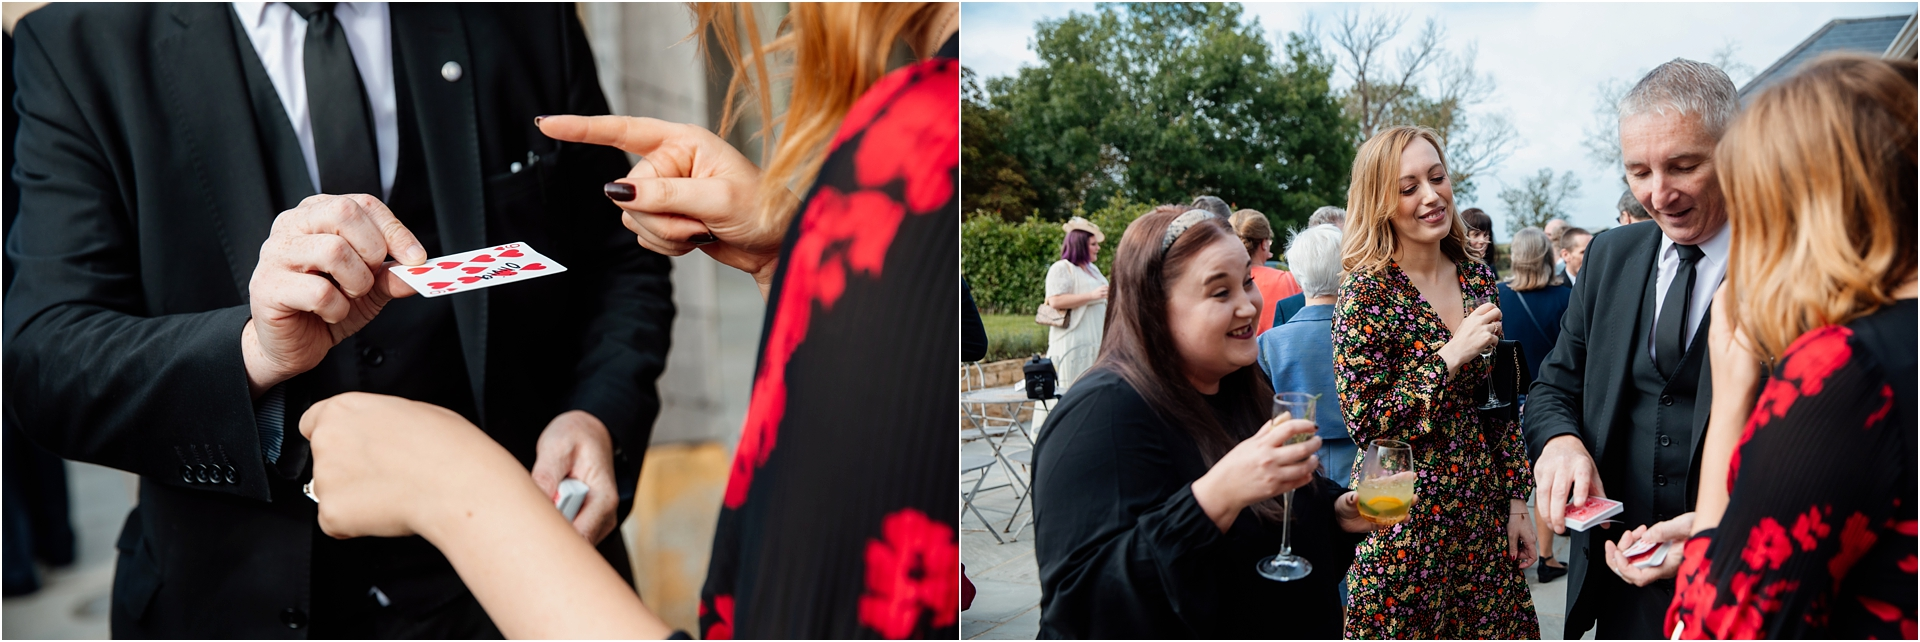 candid guest photos at Blackwell Grange